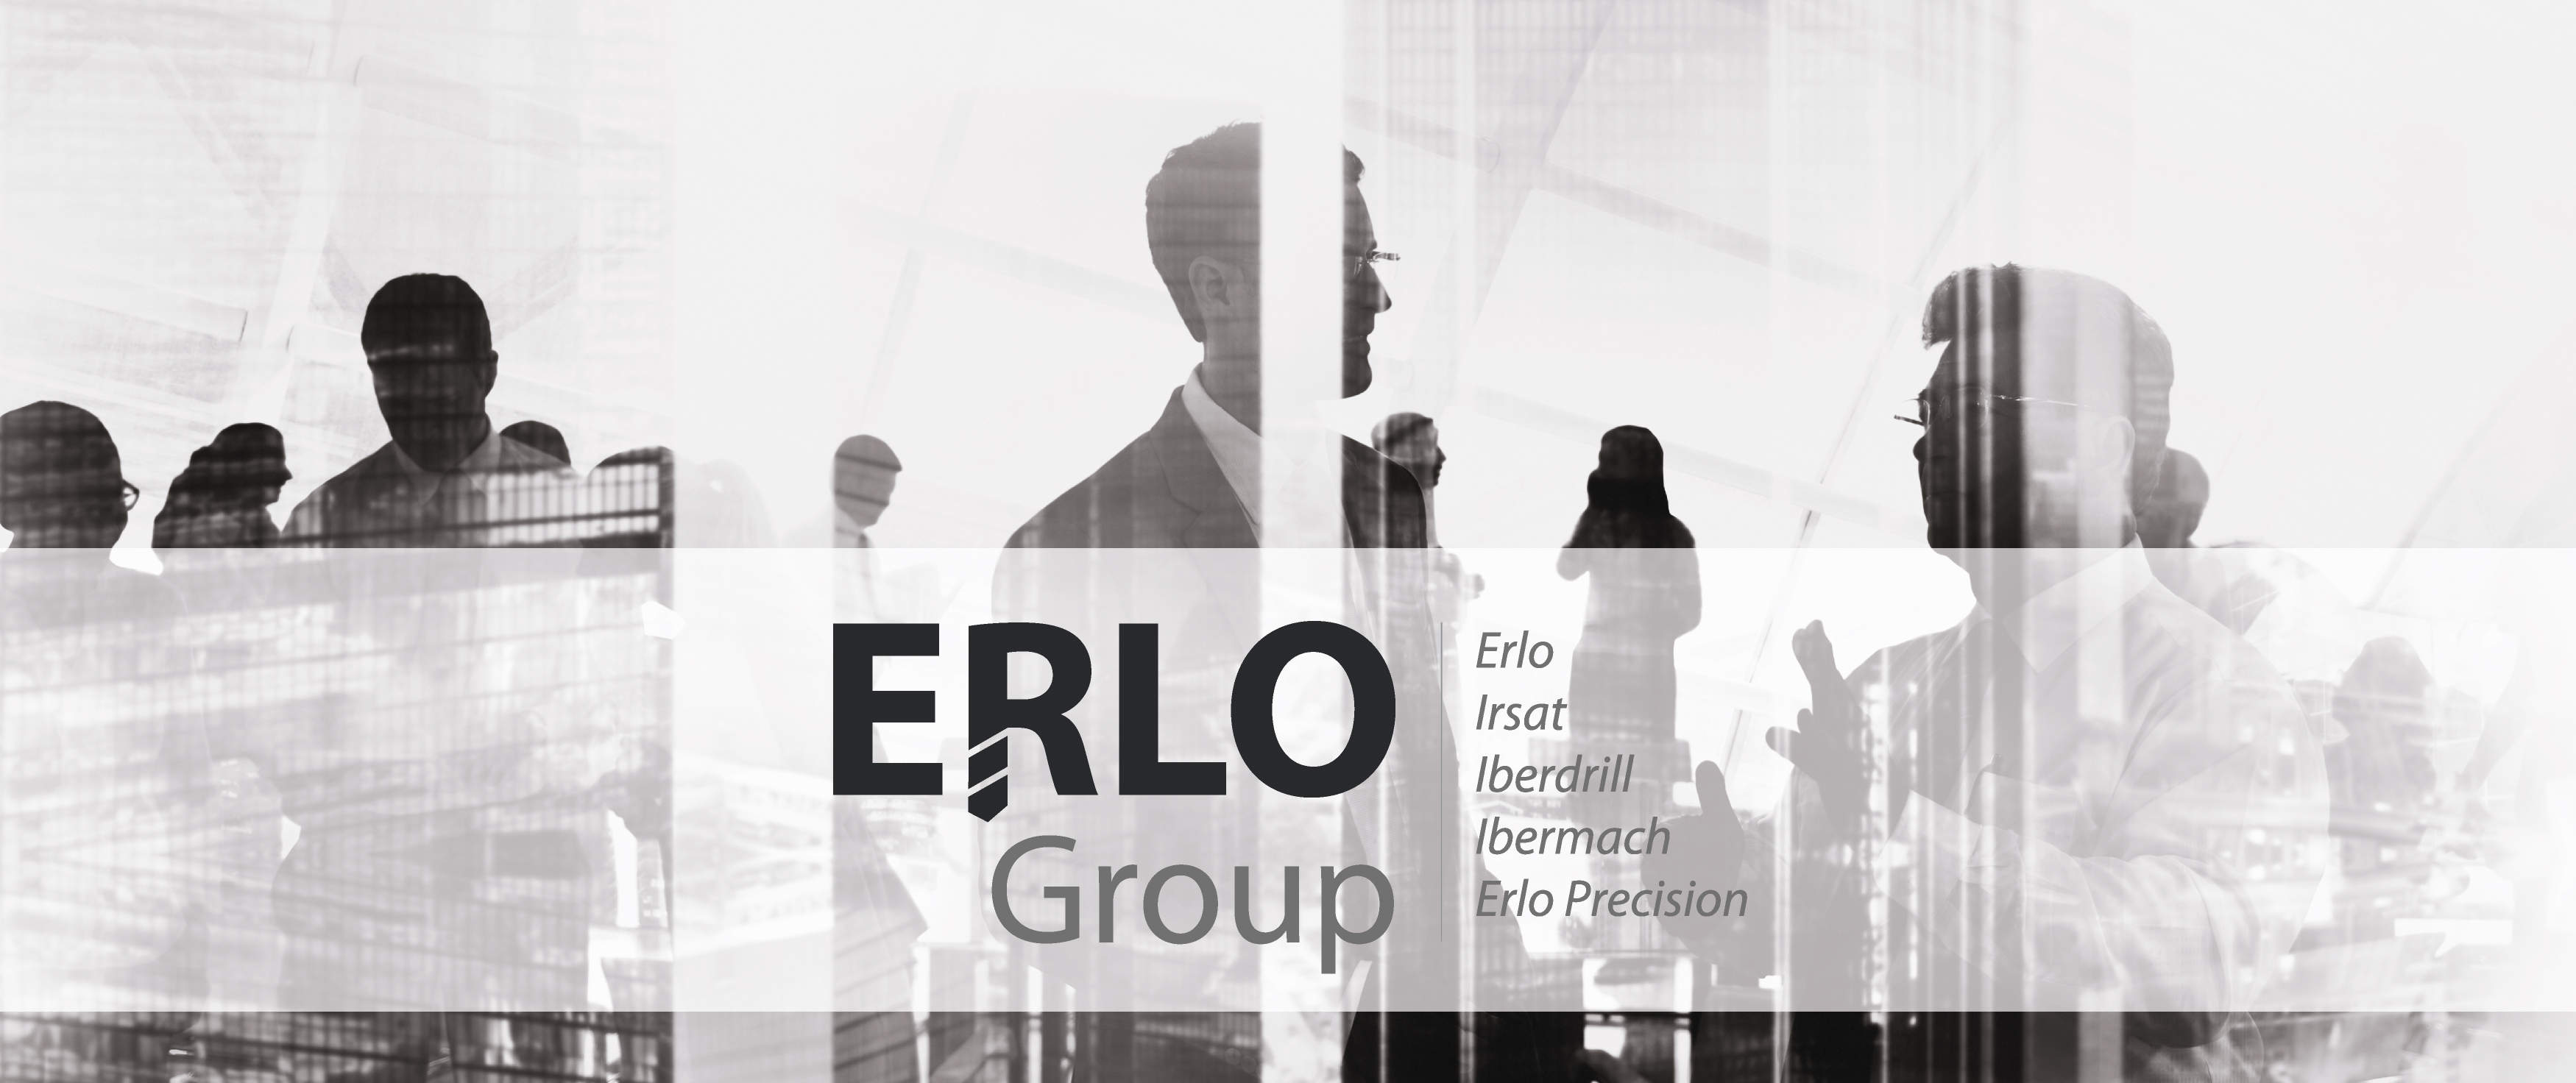 At Erlo Group, we are specialized in industrial drilling, tapping and milling machinery.